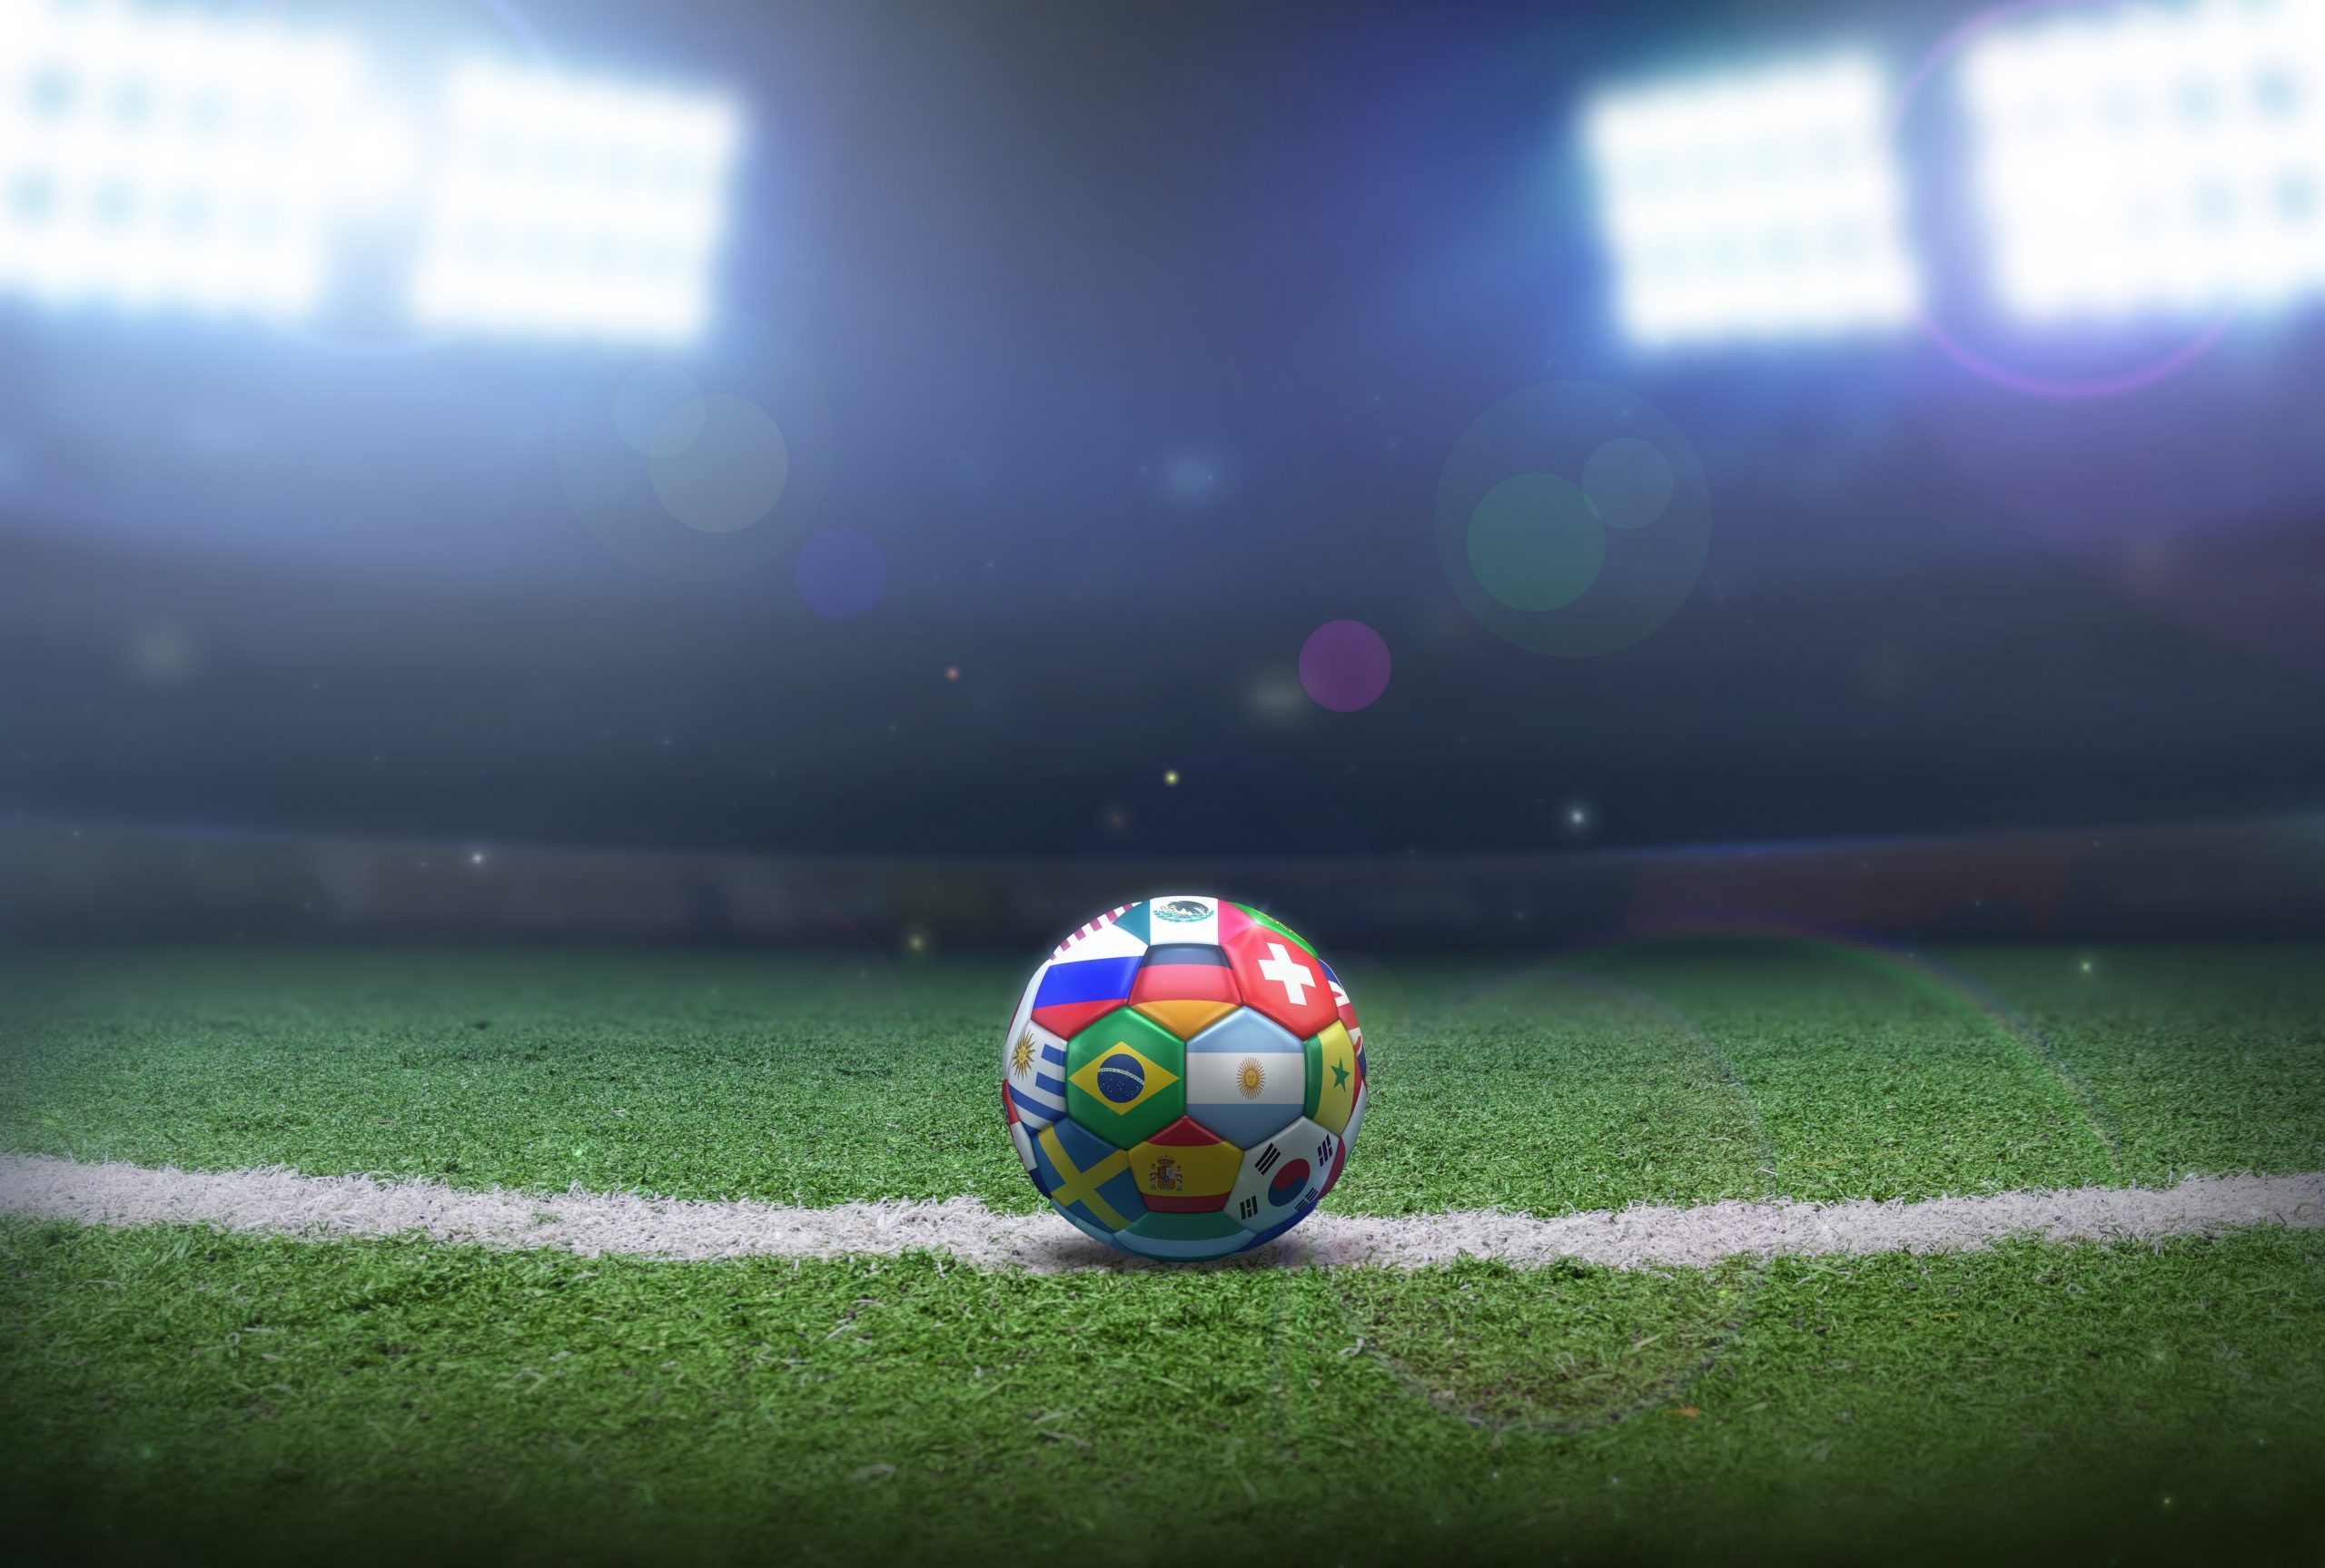 The Qatar World Cup – How Will It Affect Gambling and Legislation?